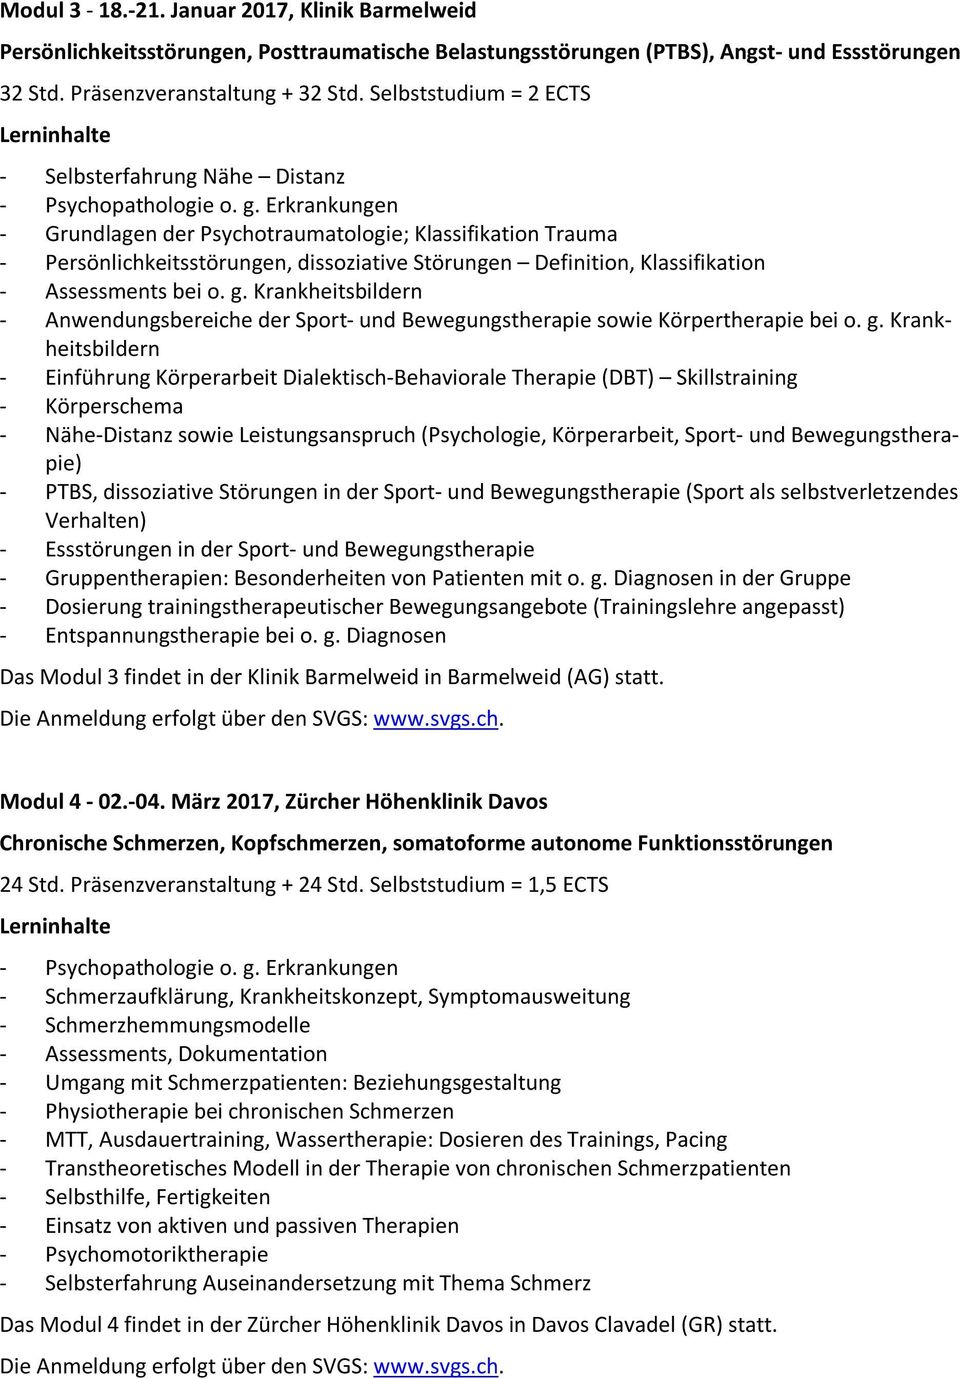 Erkrankungen - Grundlagen der Psychotraumatologie; Klassifikation Trauma - Persönlichkeitsstörungen, dissoziative Störungen Definition, Klassifikation - Assessments bei o. g.